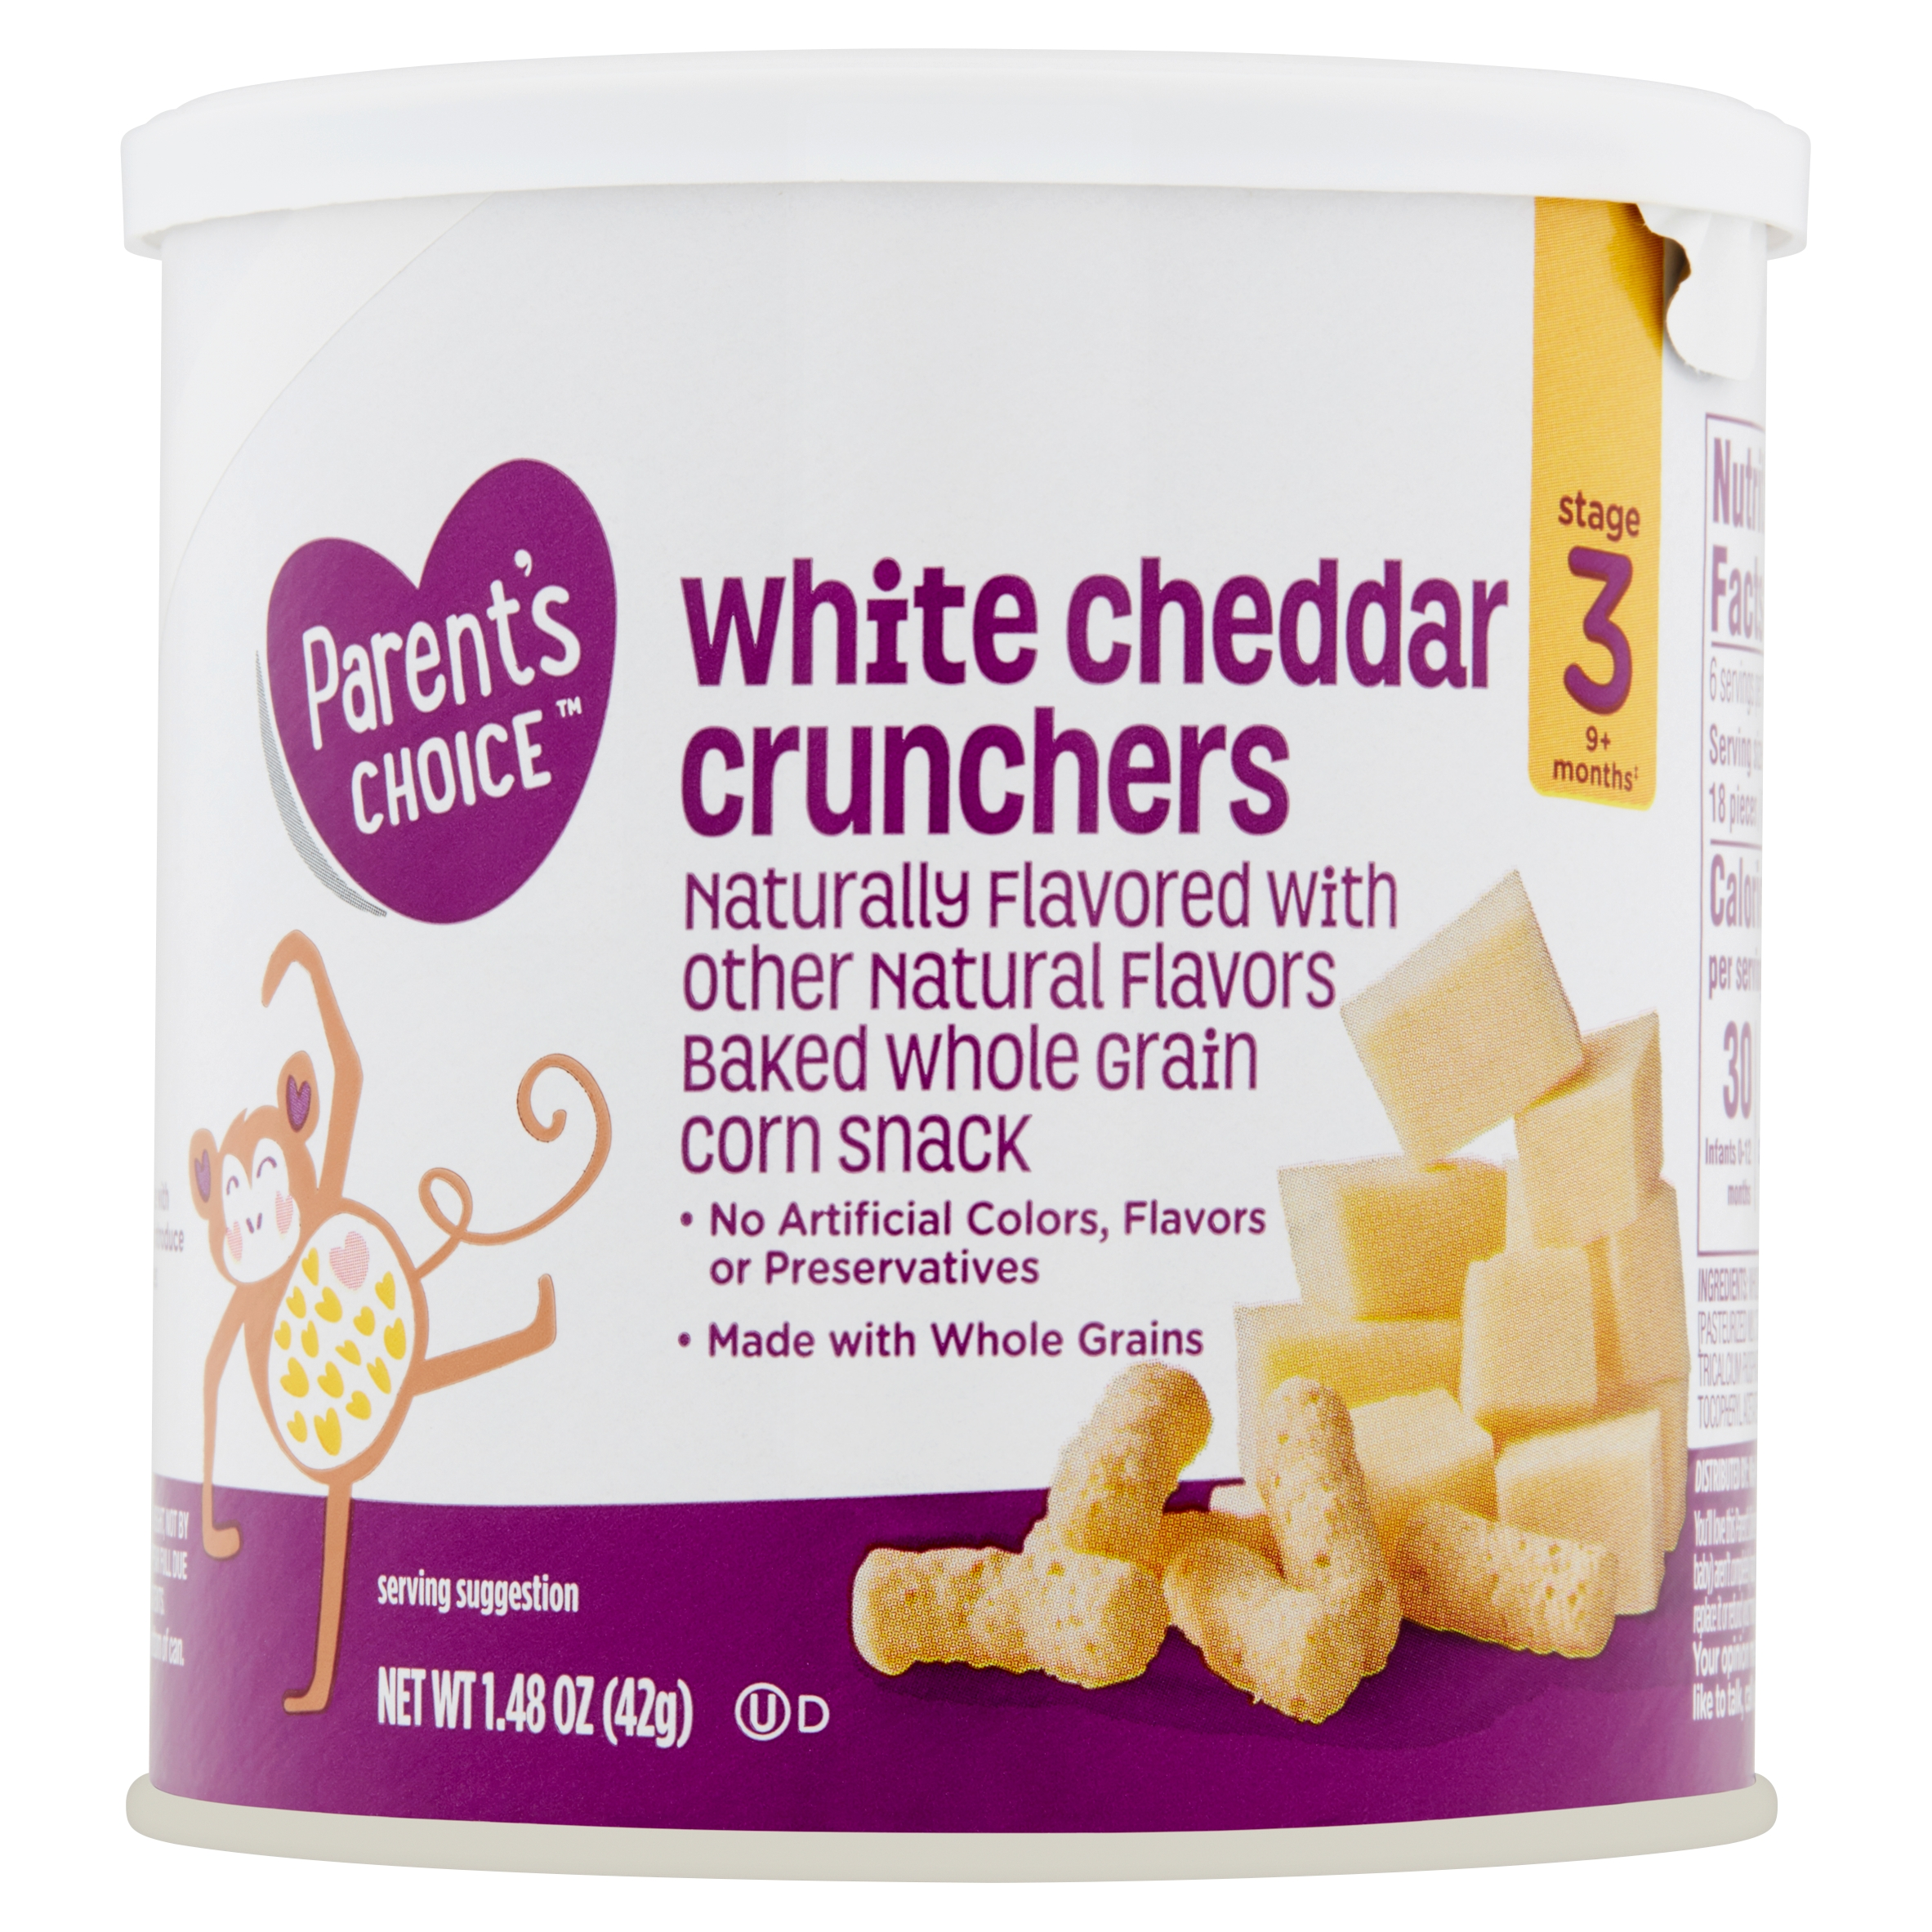 Parent's Choice Little Munchers, White Cheddar, Stage 3, 1.48 oz